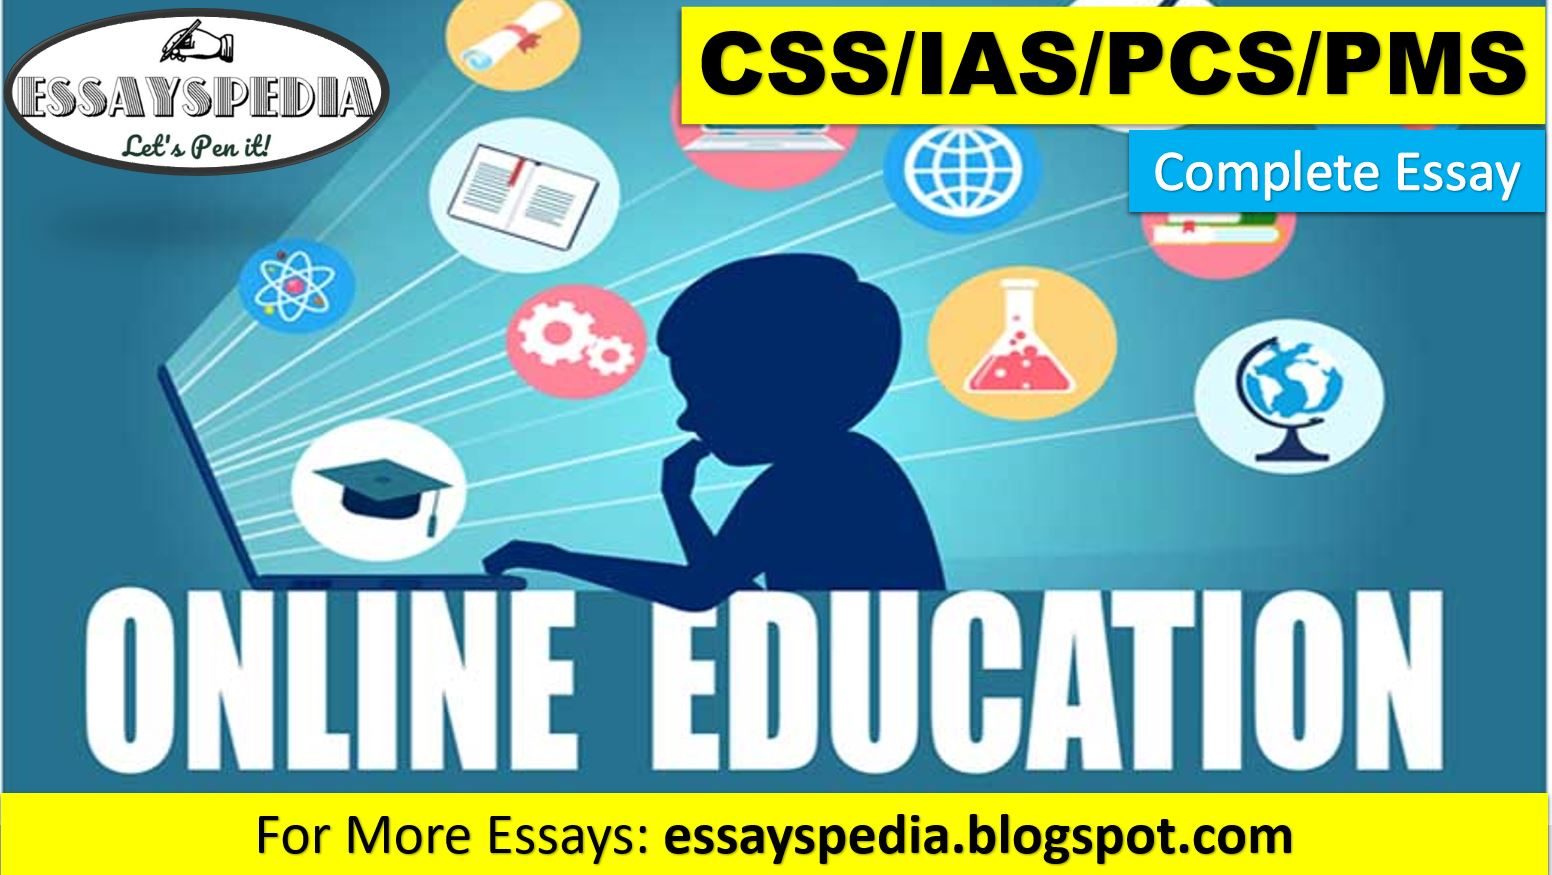 The Status of Online Education in Pakistan | Complete Essay with Outline | Essayspedia